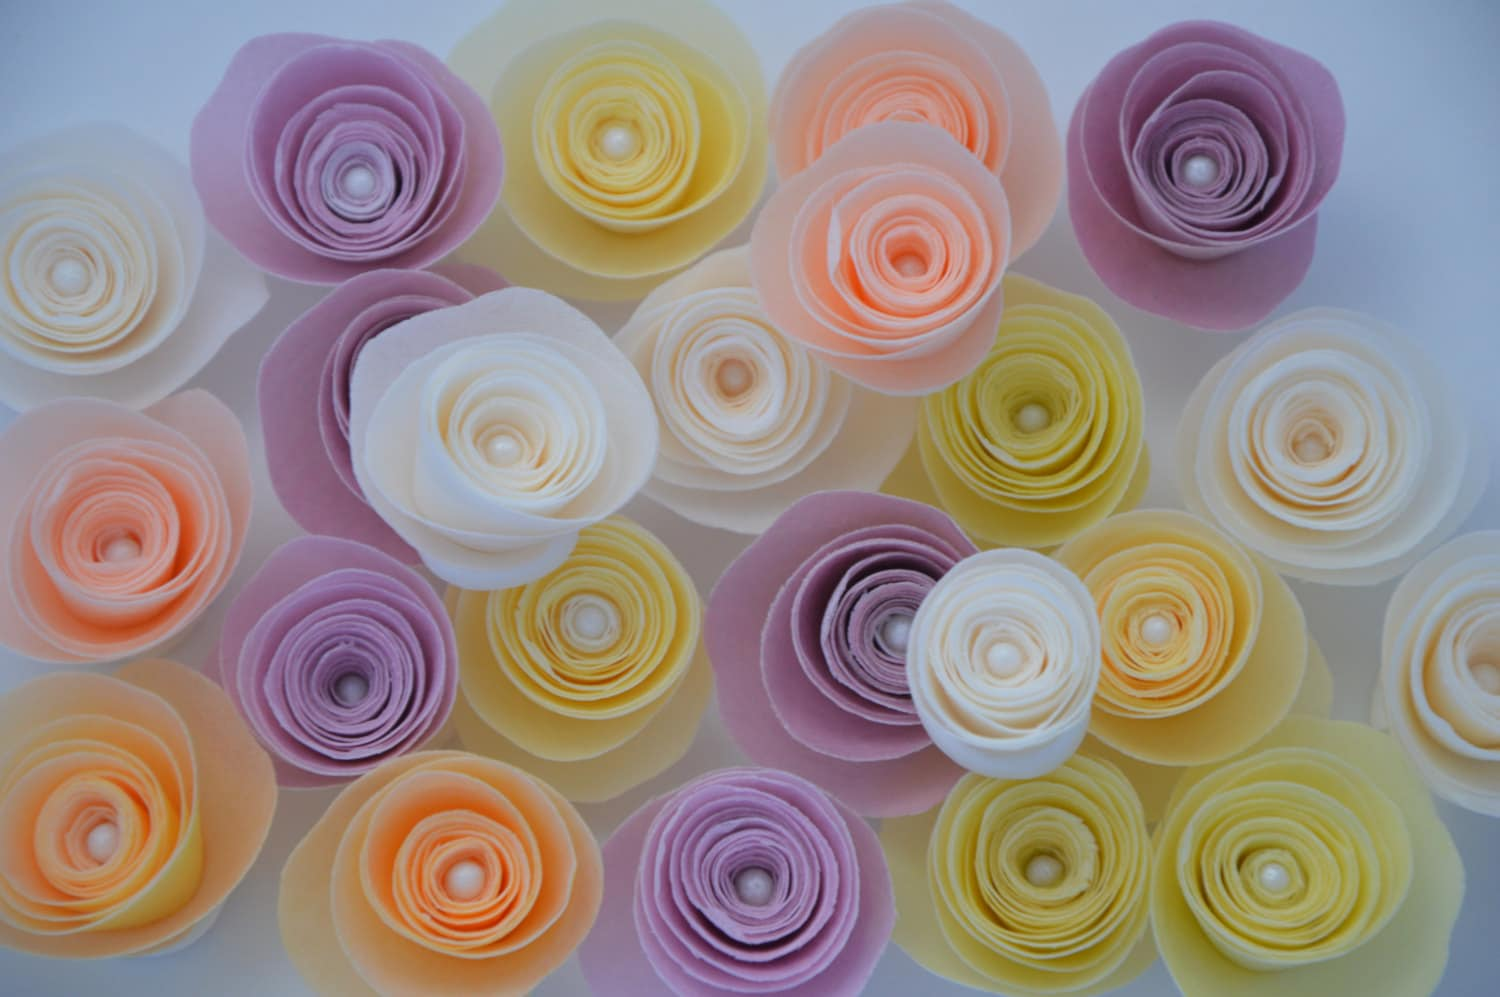 12 Edible Flowers For Cake Wafer Paper Flowersedible Flowers